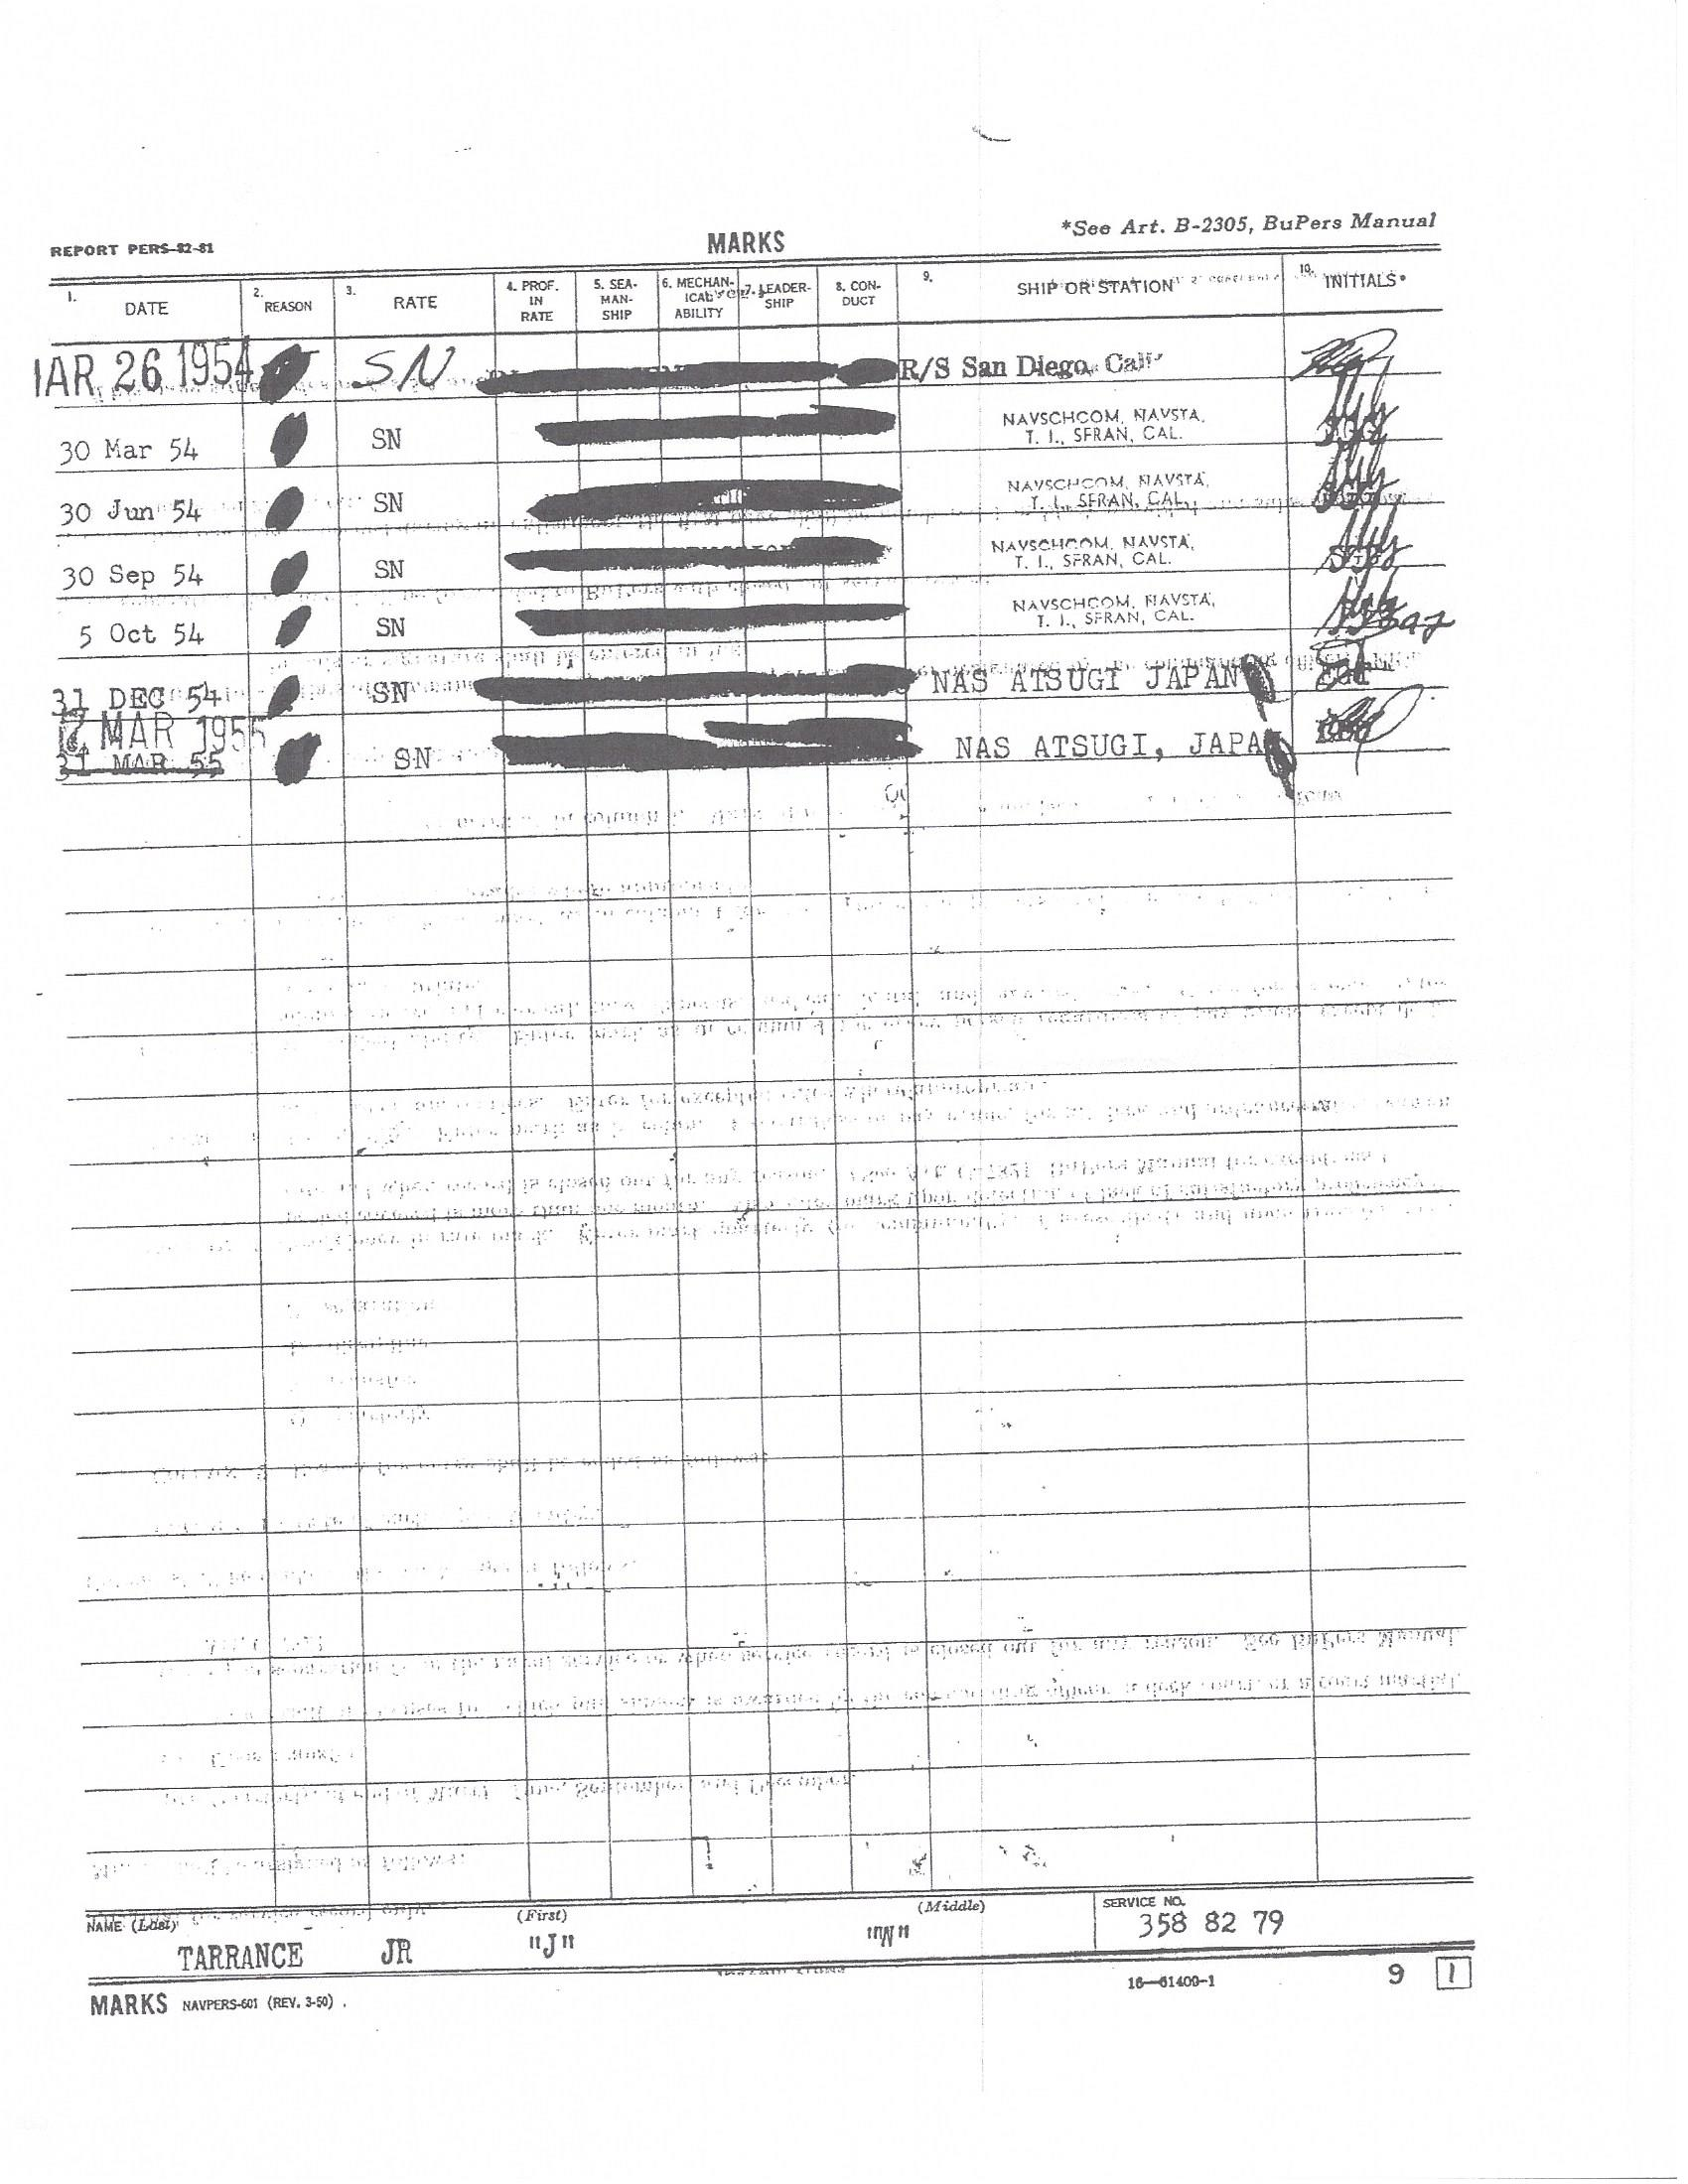 Jack's Military Record FOIA0002.jpg